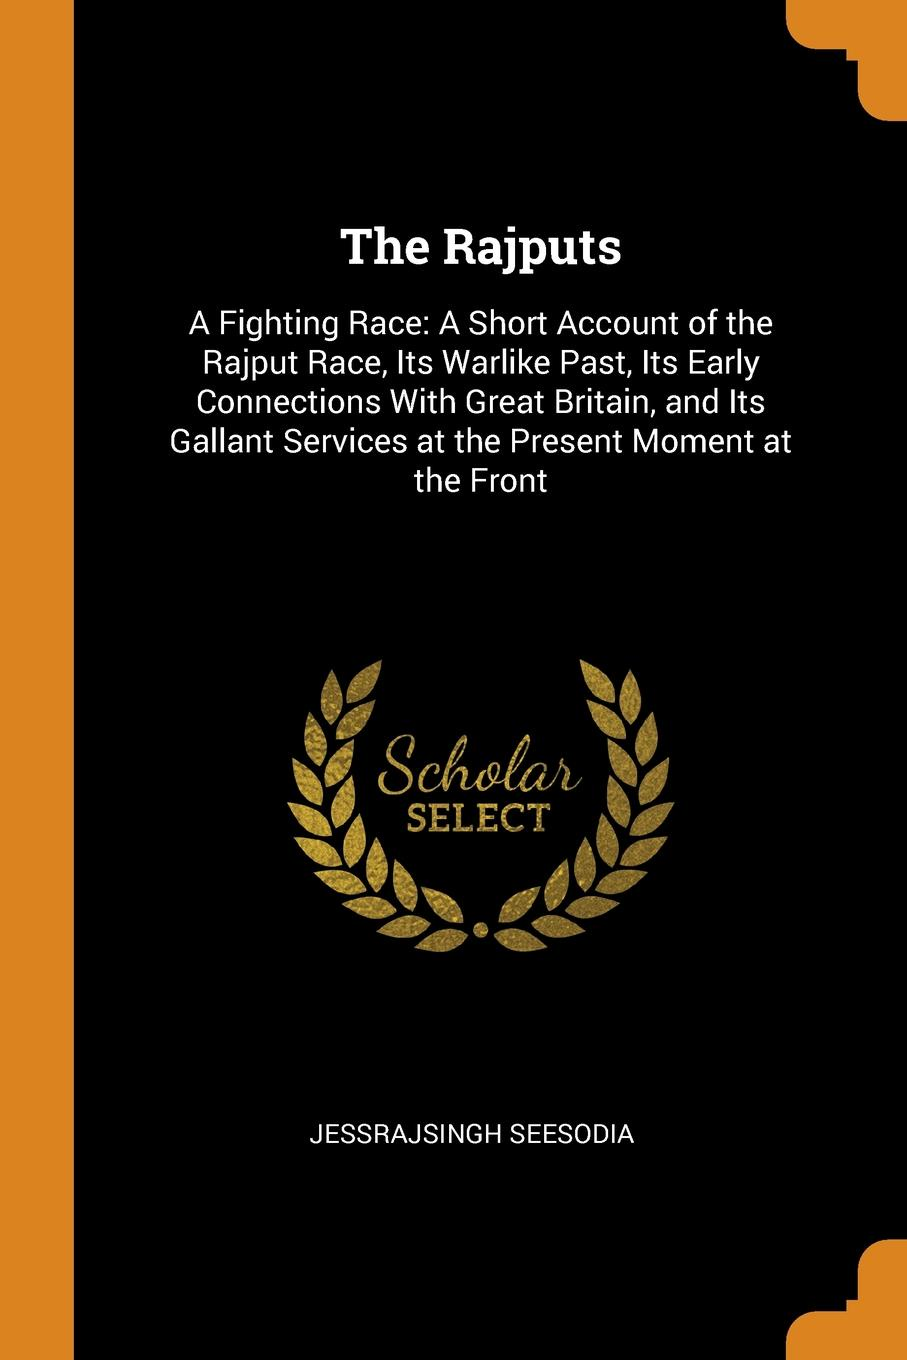 Jessrajsingh Seesodia The Rajputs. A Fighting Race: Short Account of the Rajput Race, Its Warlike Past, Early Connections With Great Britain, and Gallant Services at Present Moment Front